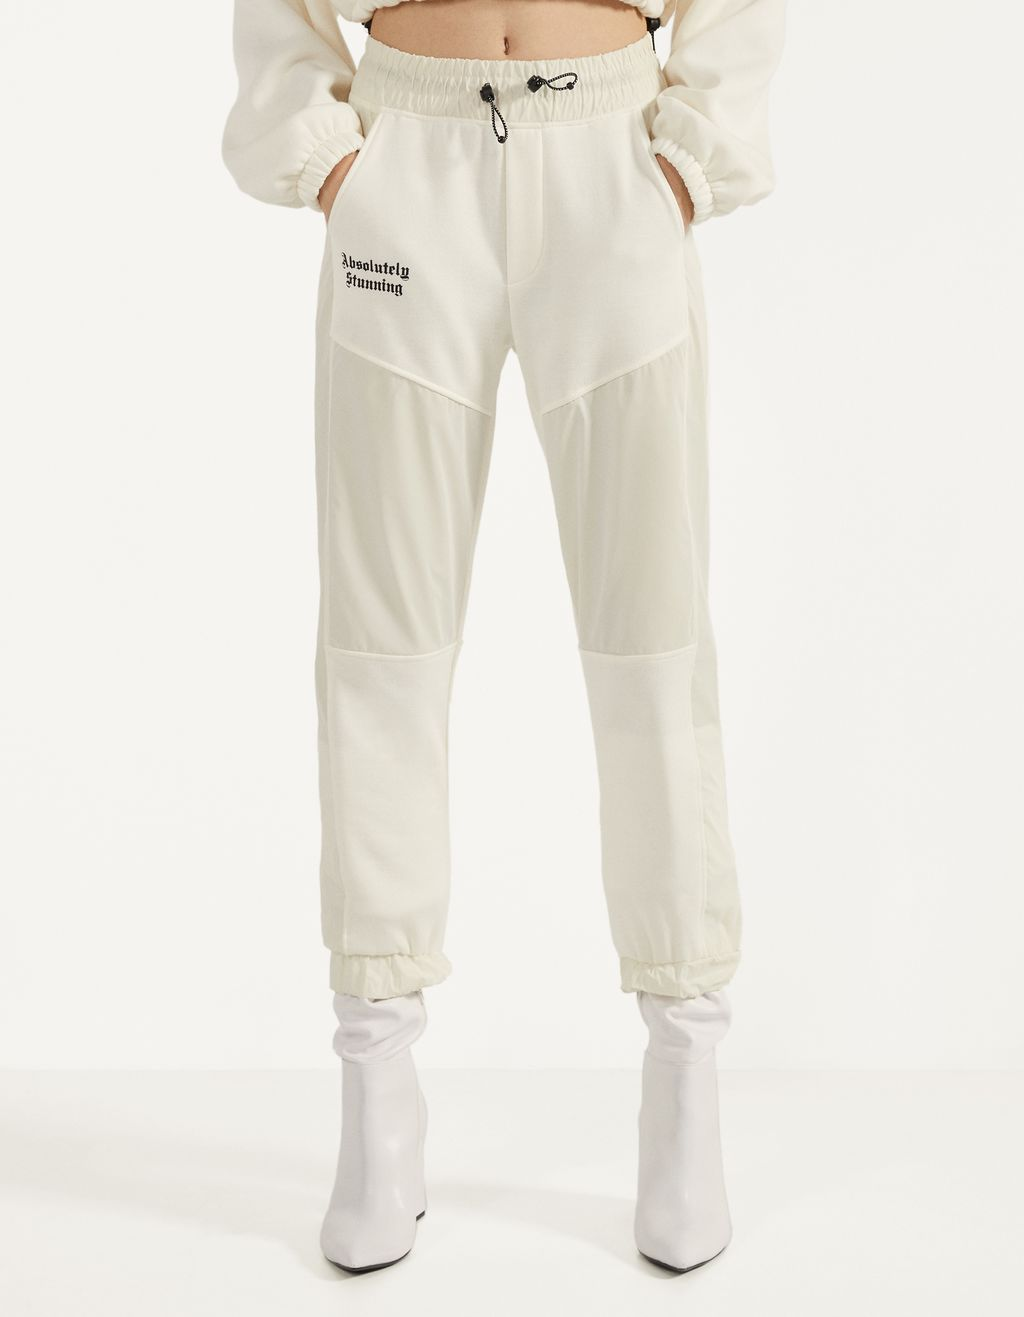 Jogging trousers with reflective side stripes